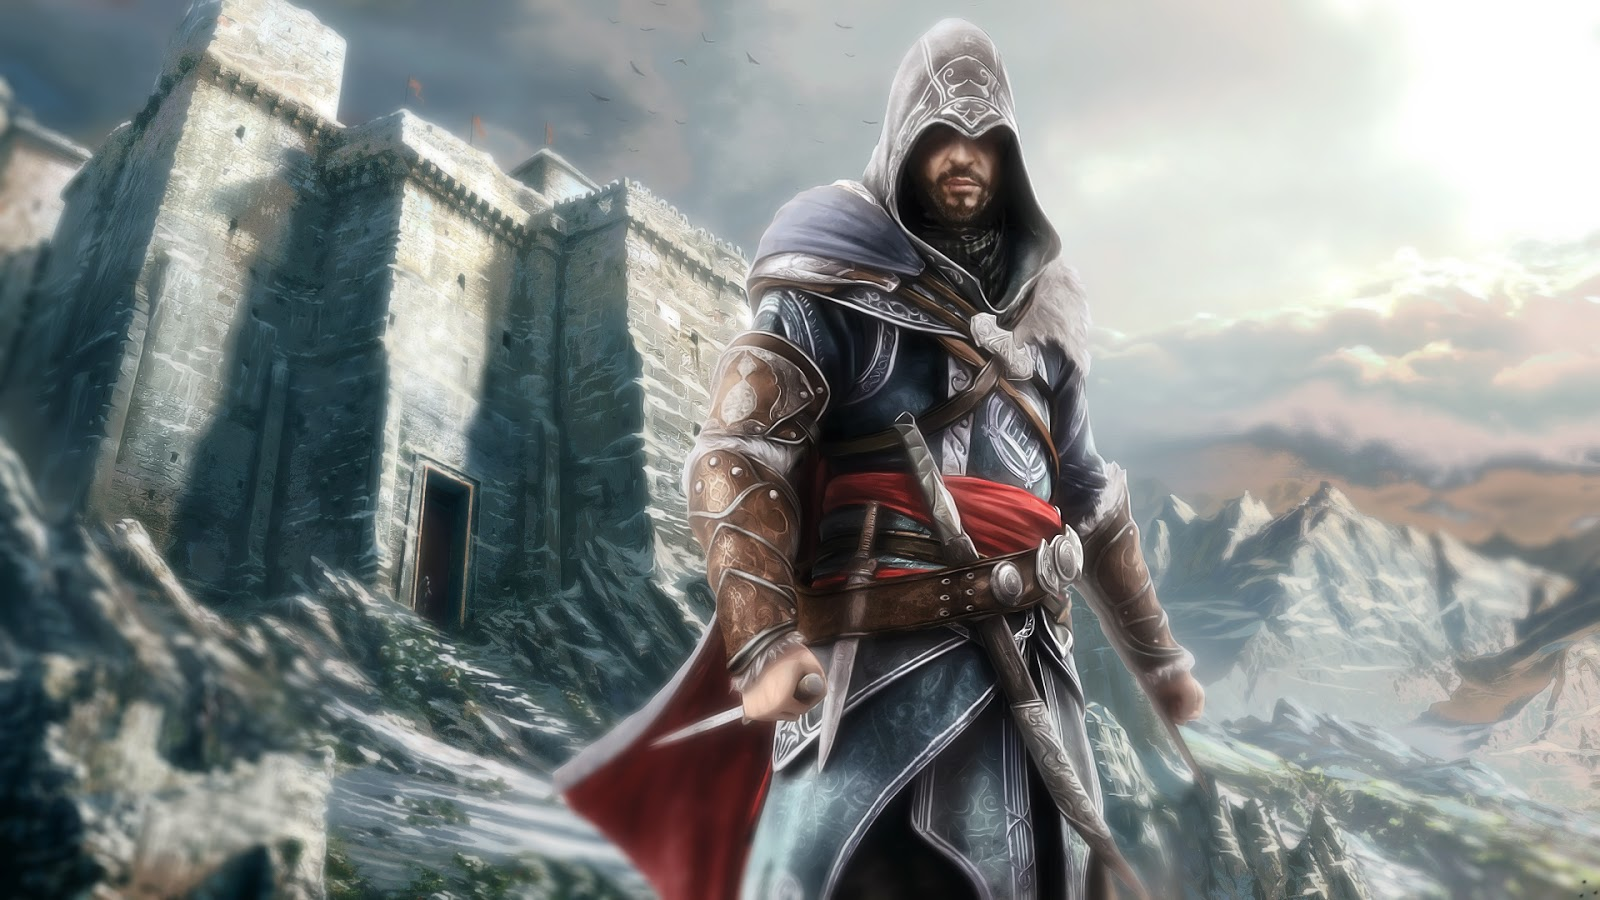 DreamWALLpics: Assassins Creed Hd Wallpapers